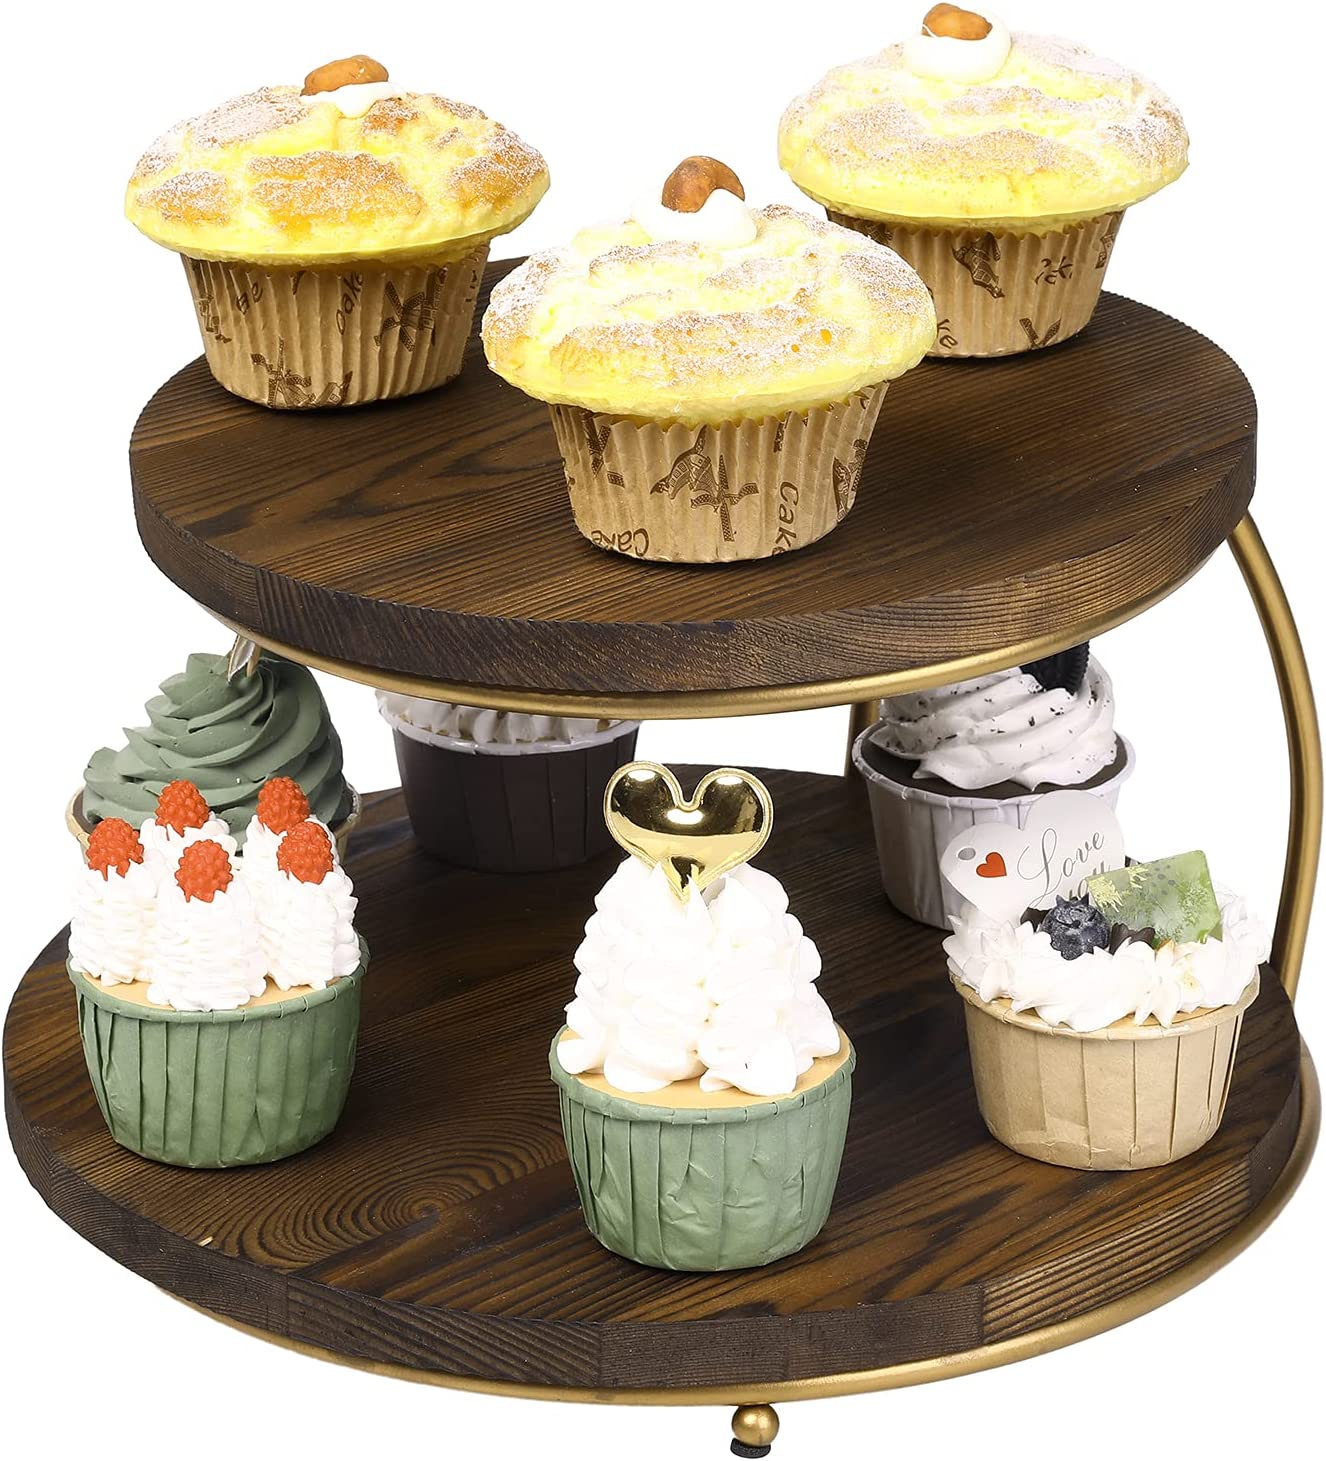 specialty shop 67% OFF of fixed price MyGift 2-Tier Pizza Rack Cupcake Solid Display Round Stand with